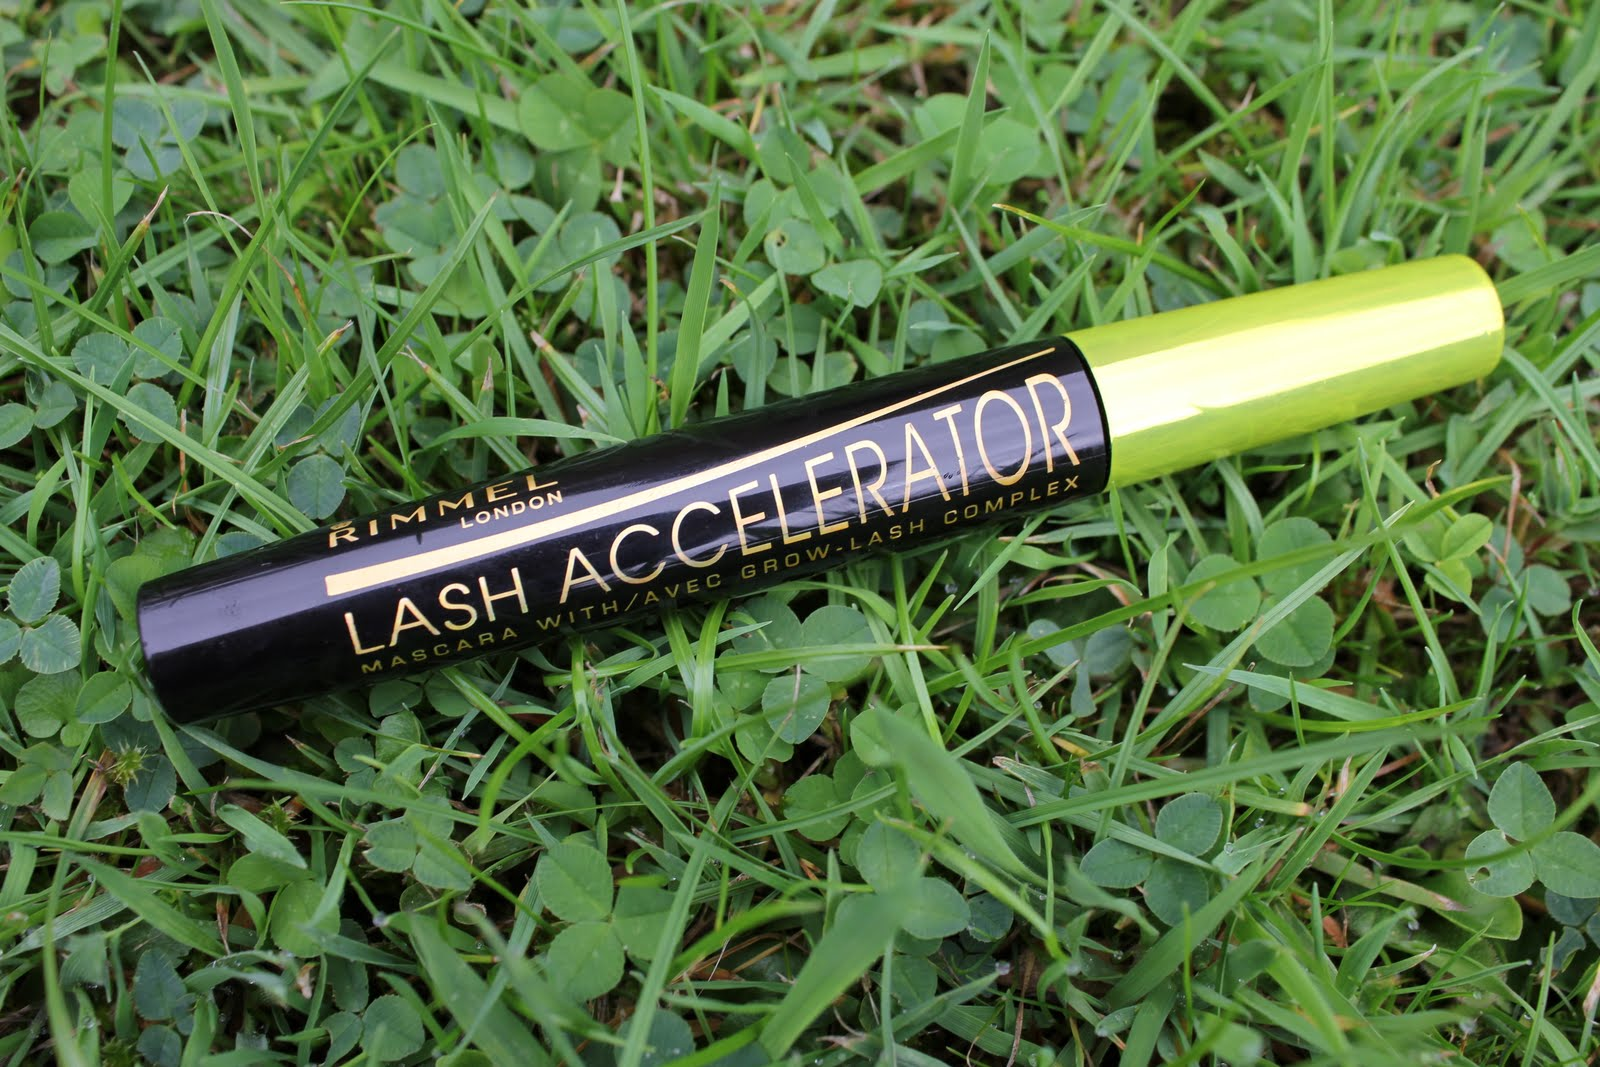 Lash Growth Complex Mascara In One Rimmel London Lash Accelerator